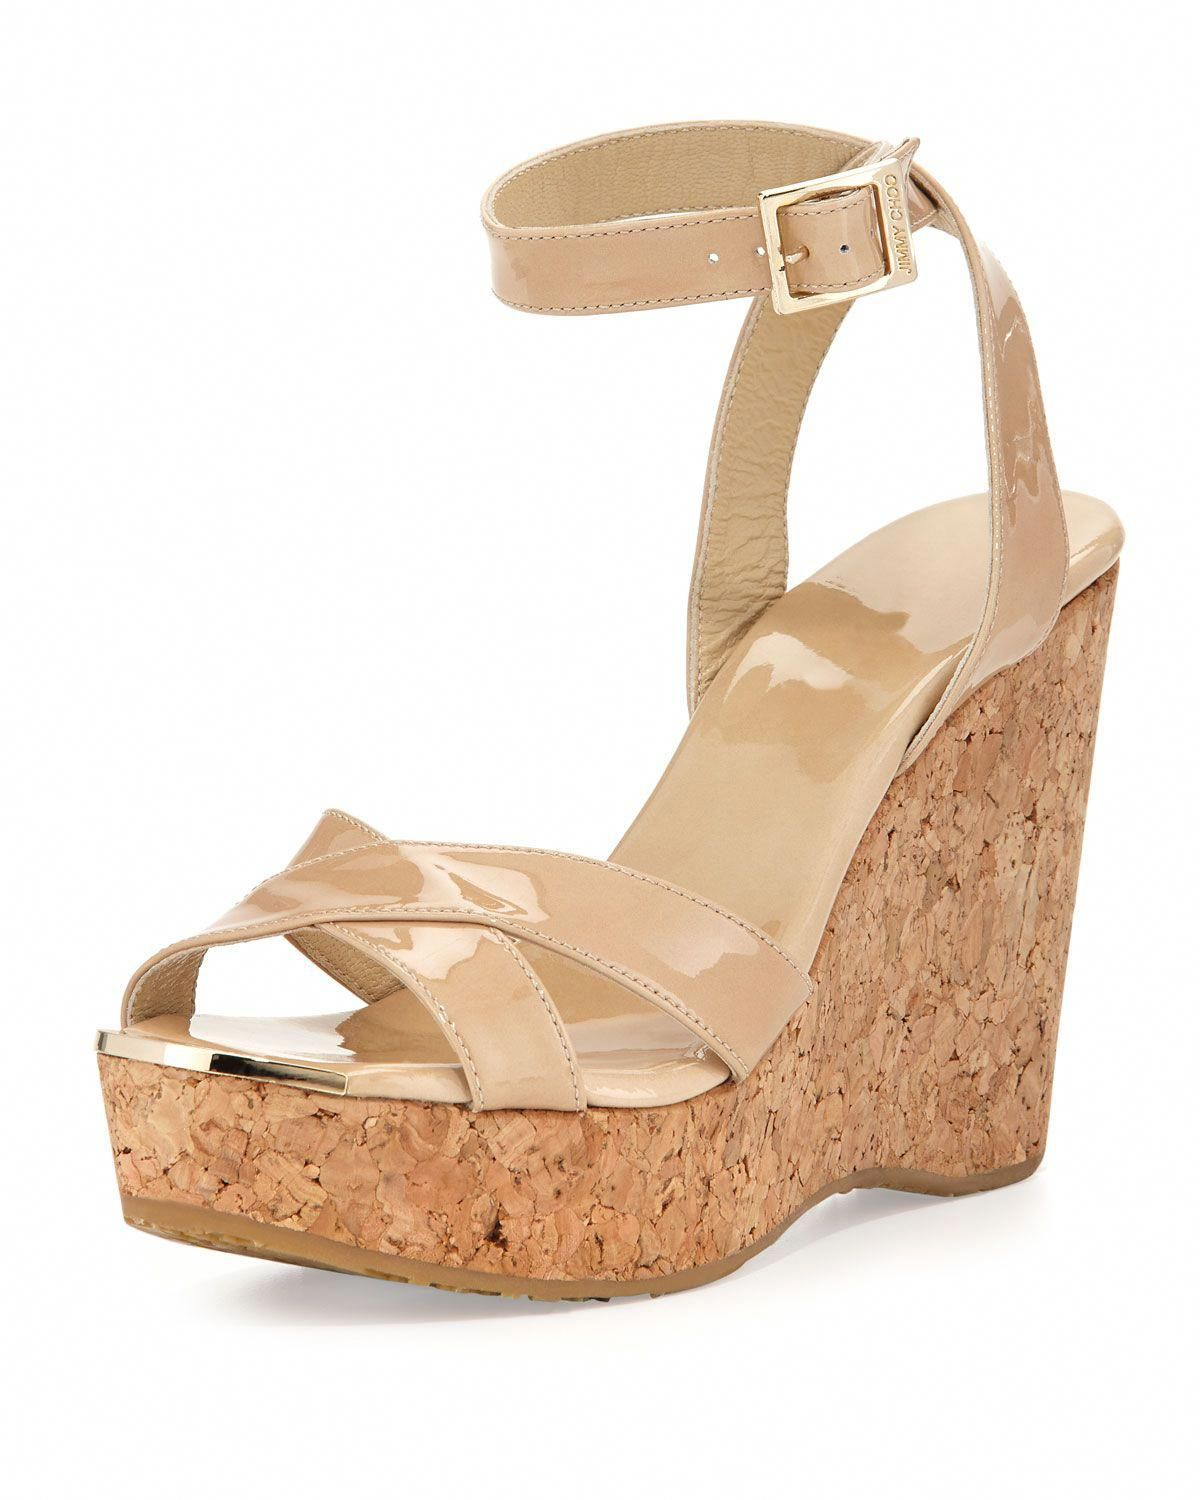 e92bec307784 Jimmy Choo Papyrus Patent Cork Wedge Nude in Beige (NUDE)